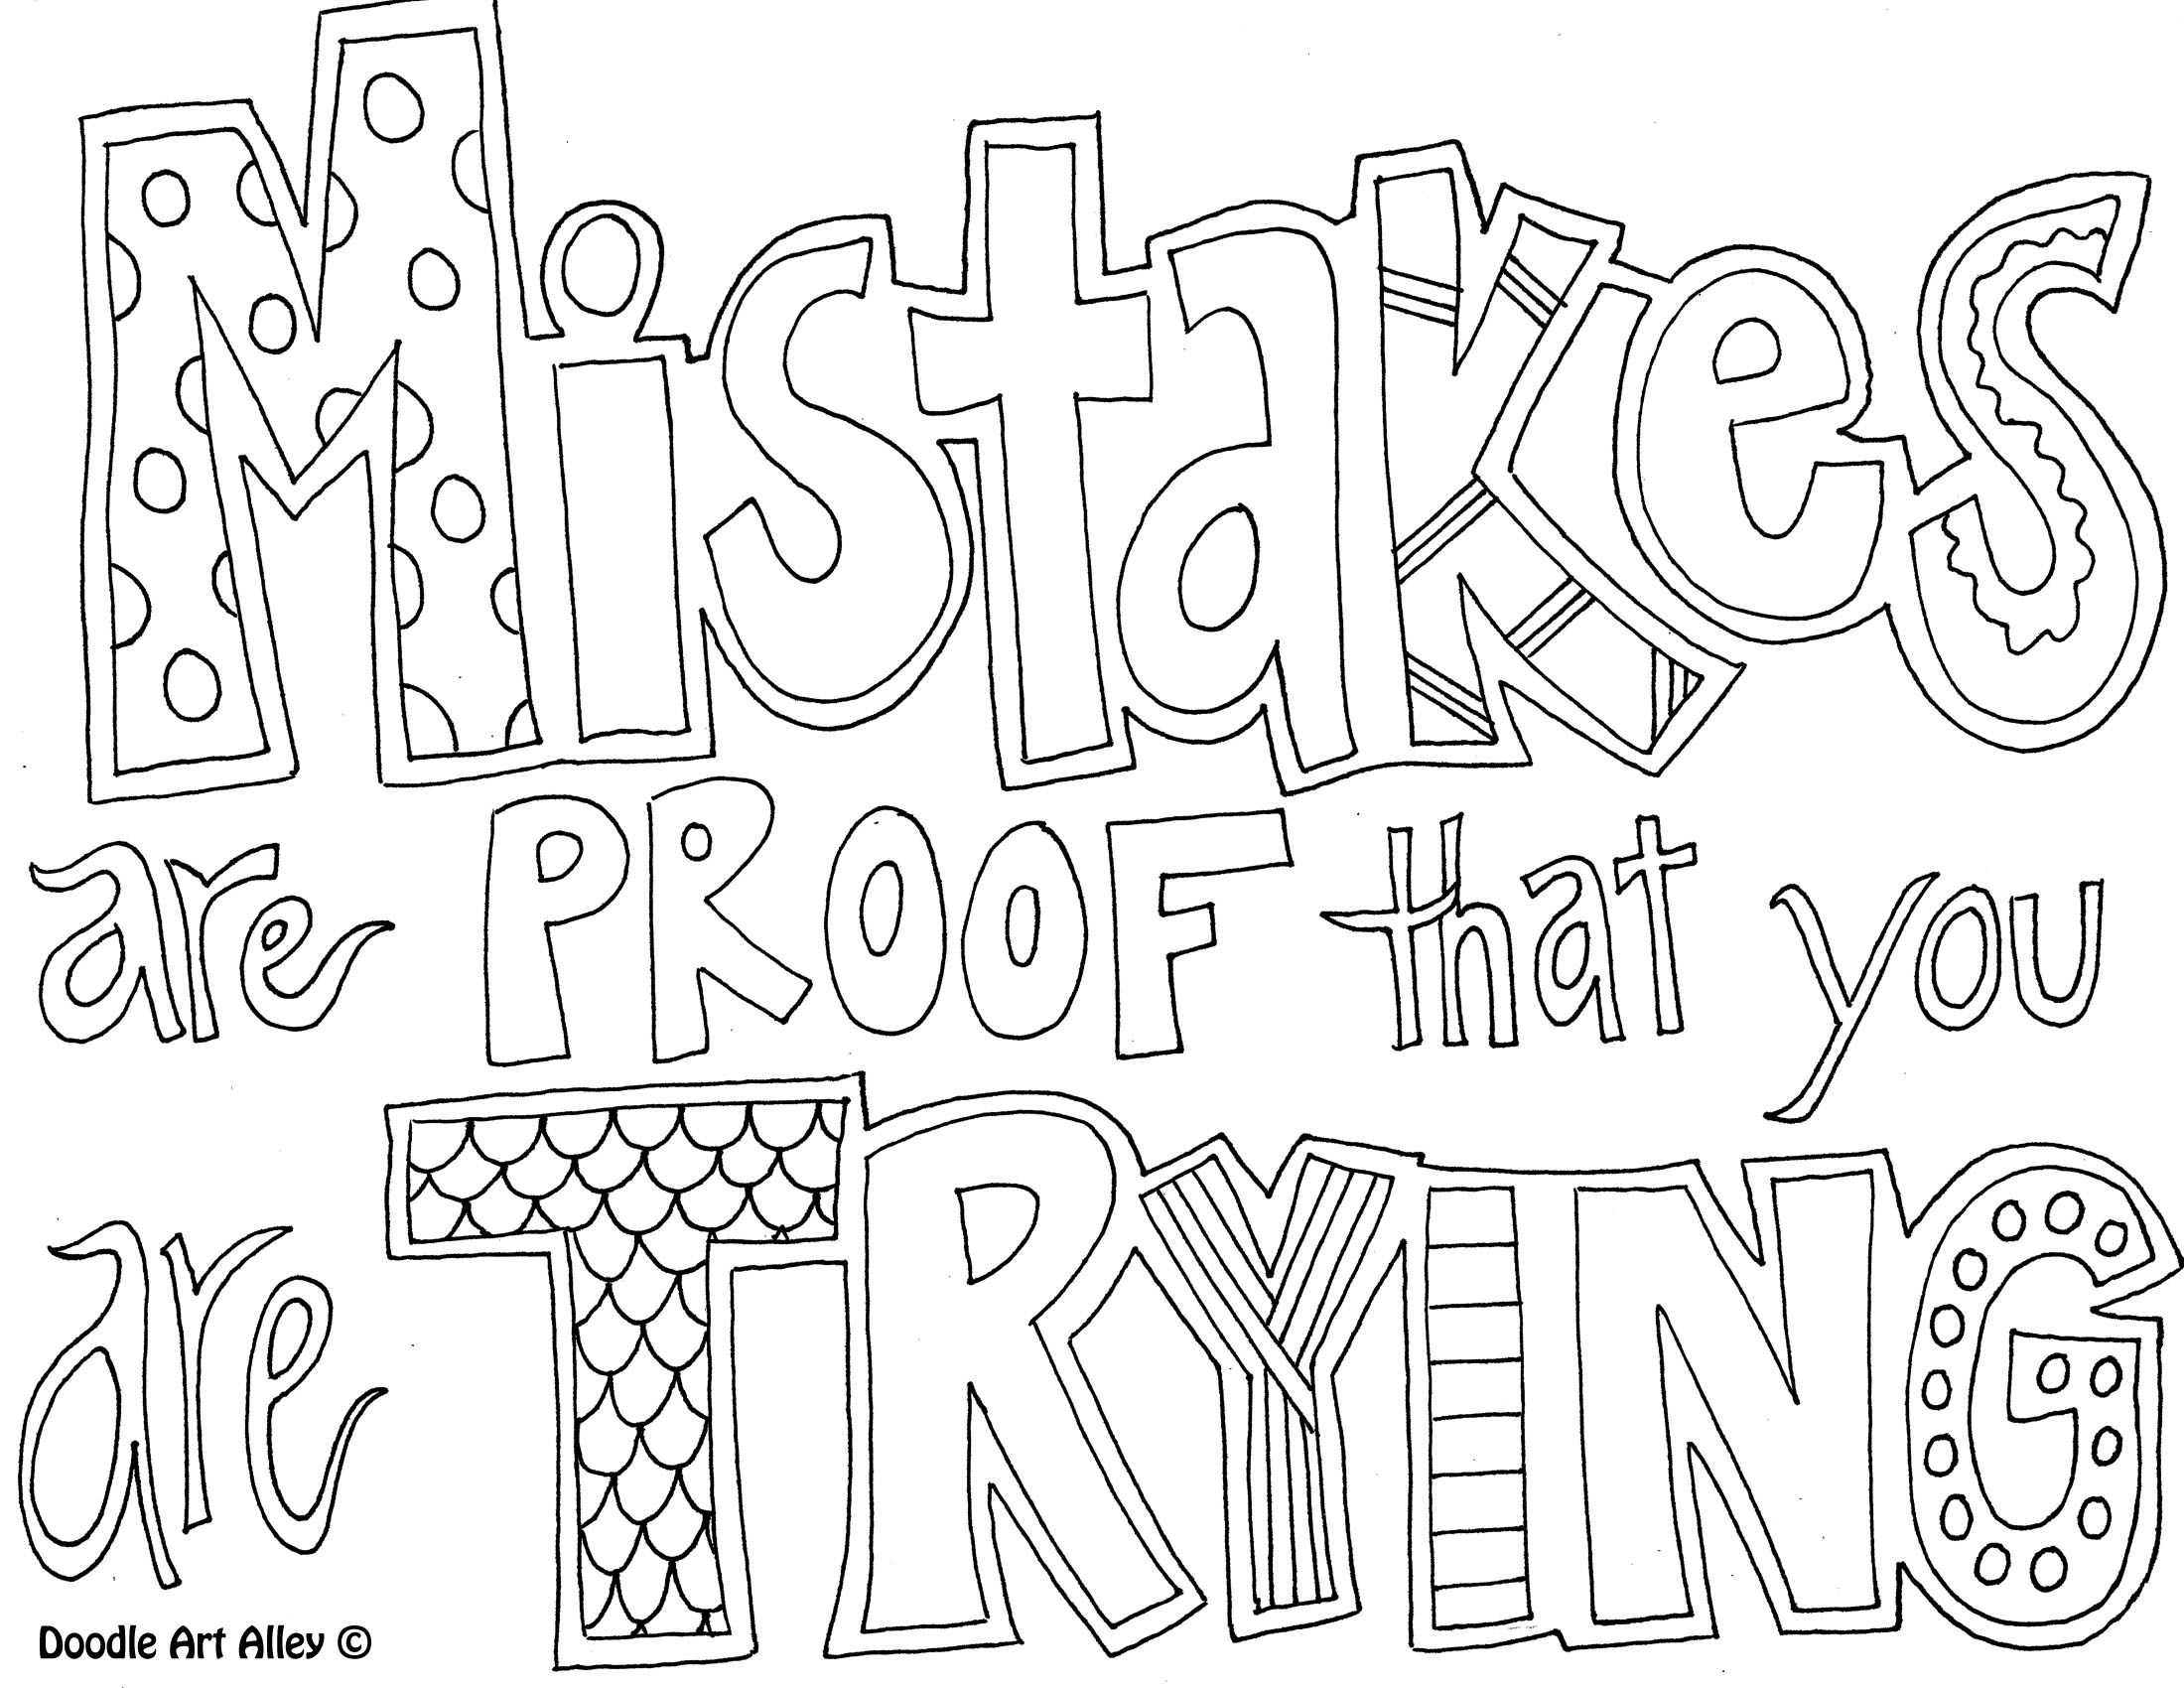 2200x1700 New Quote Coloring Pages Linefa Free Coloring Pages For Children